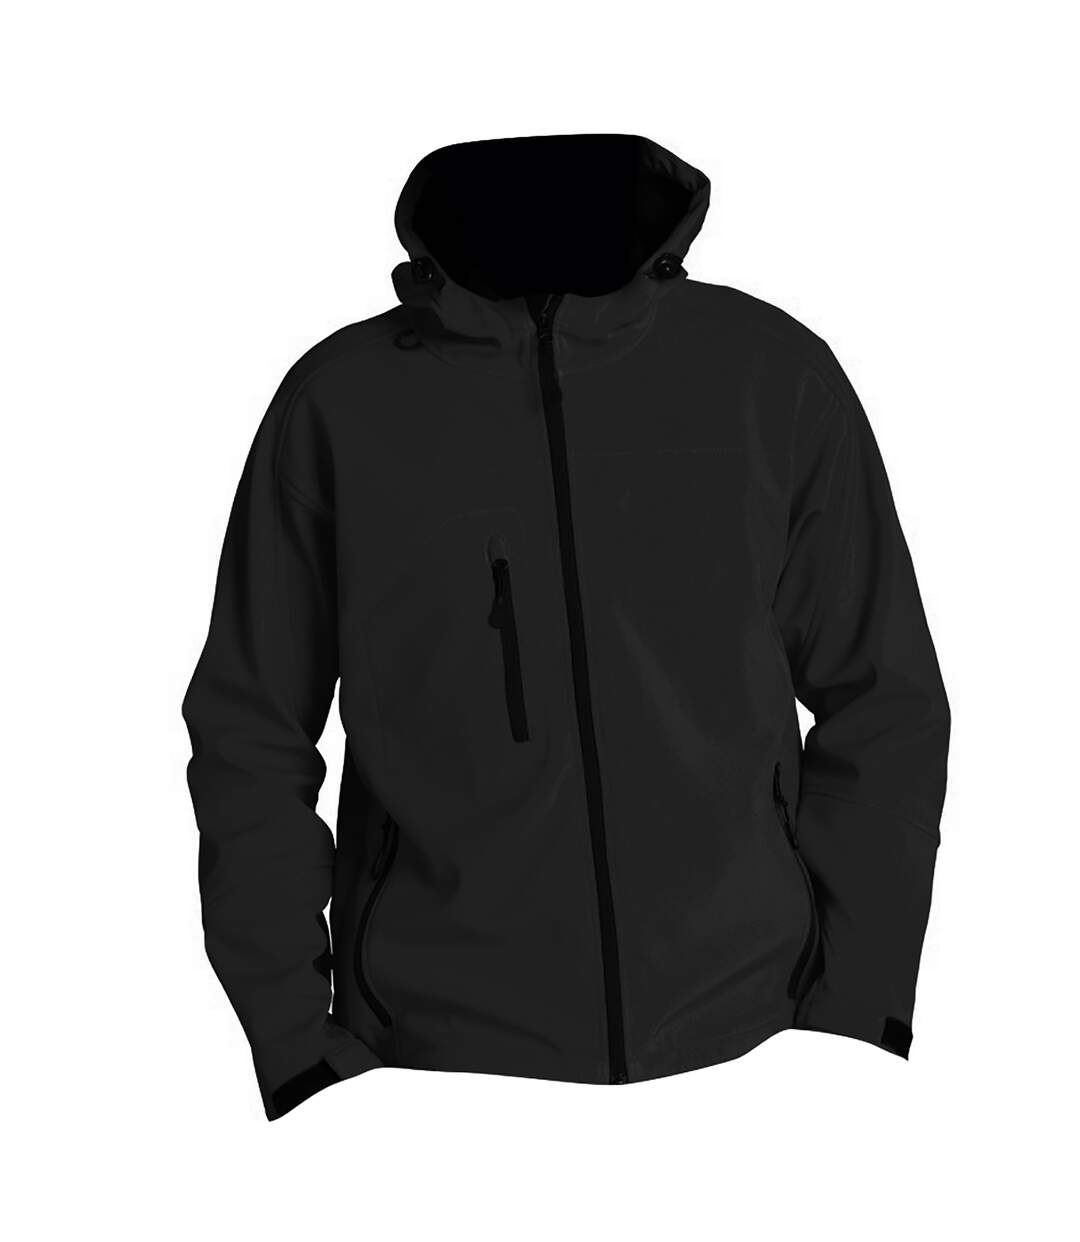 SOLS Mens Replay Hooded Soft Shell Jacket (Breathable, Windproof And Water Resistant) (Black) - UTPC410